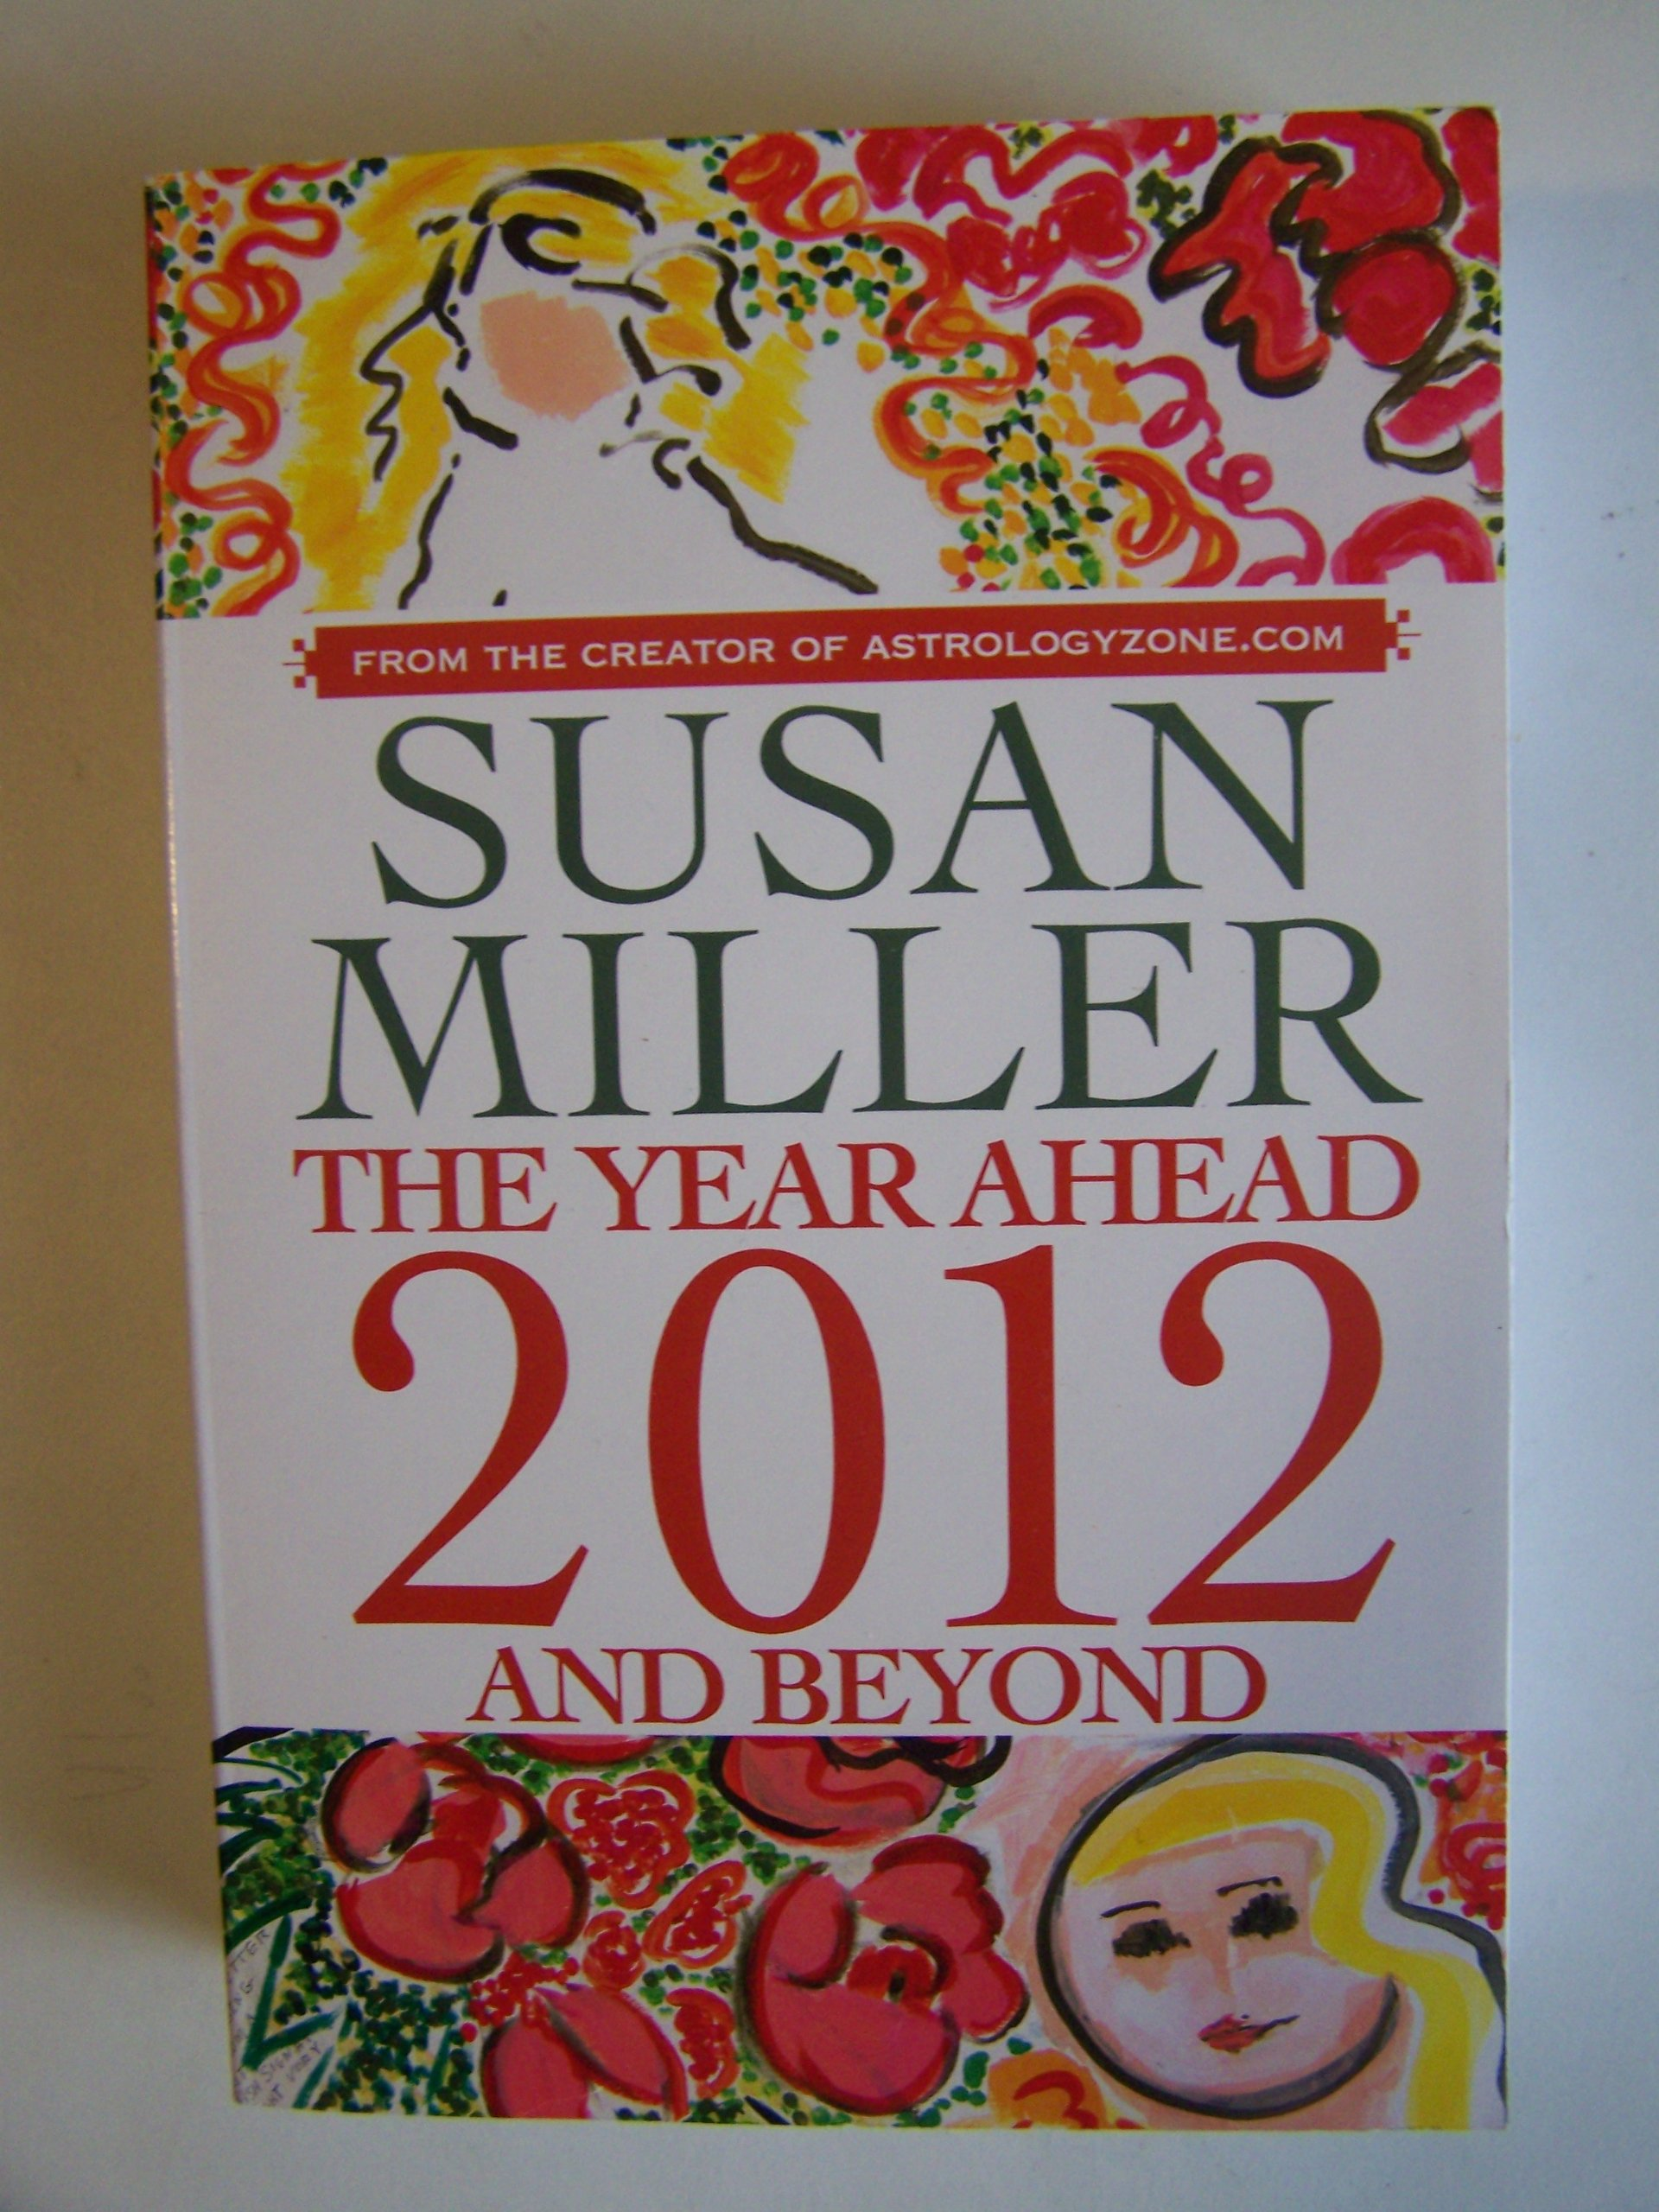 Susan Miller's astrological predictions for a new century.